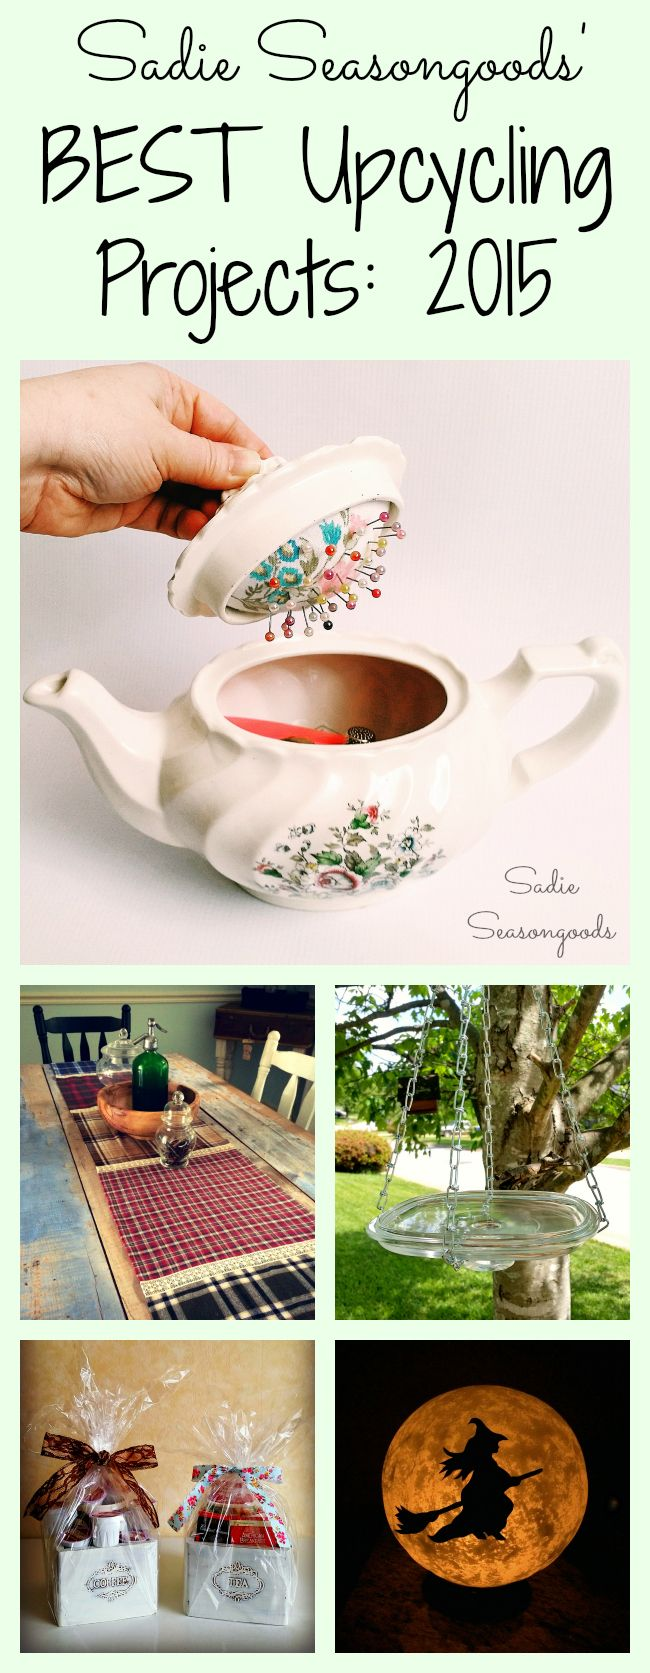 .~Best upcycle and repurpose projects using vintage treasures and thrift store finds by Sadie Seasongoods~.